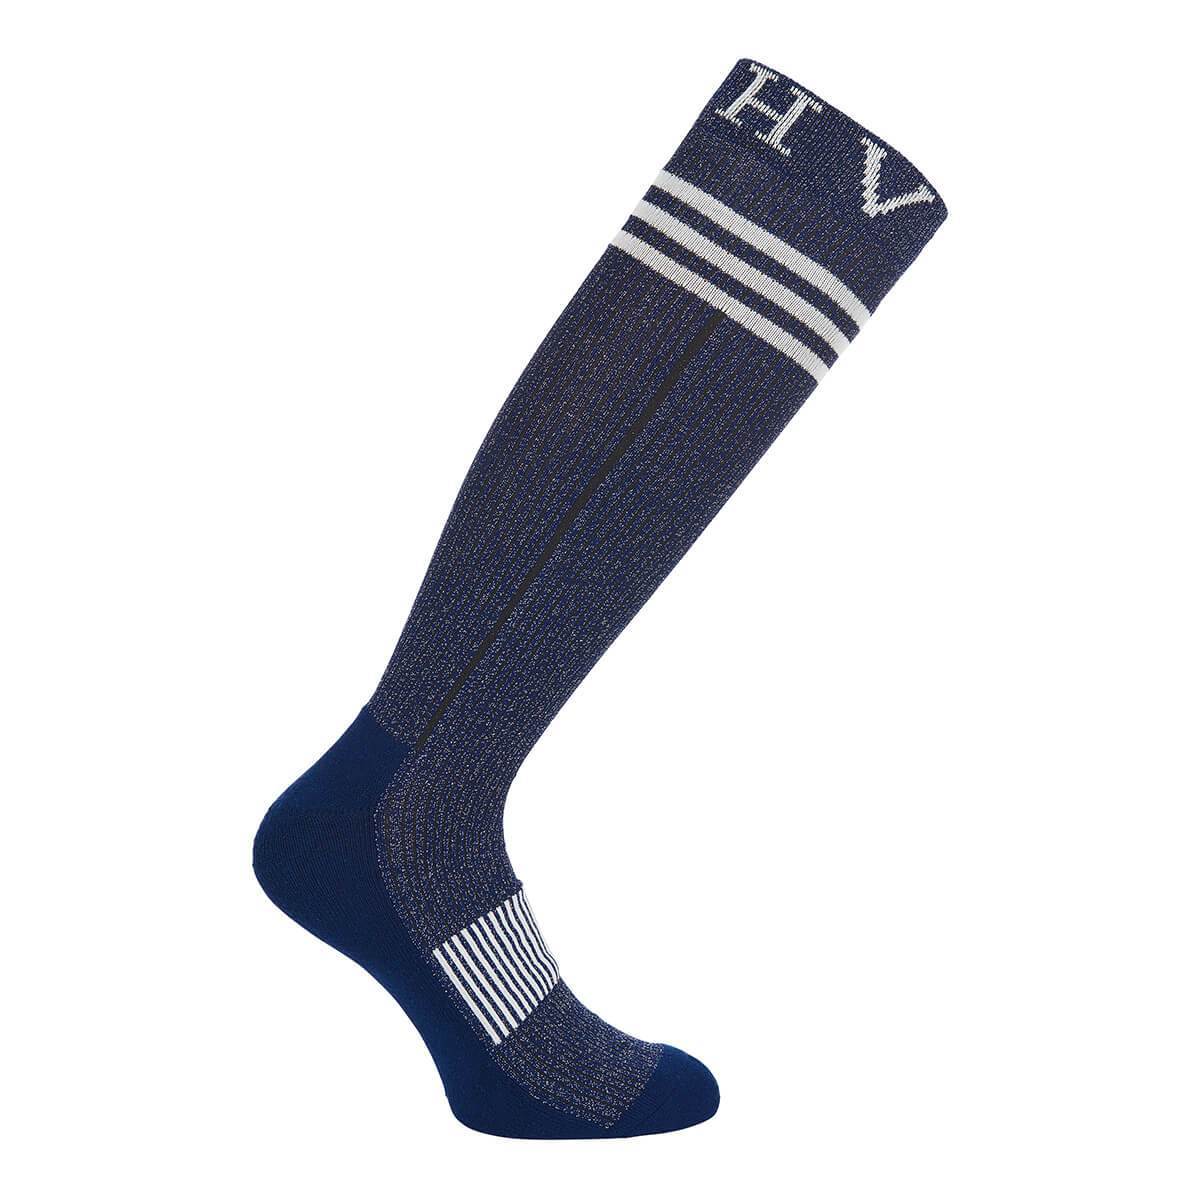 HV Polo Glitter Socks - Black - Blueberry or Navy - Divine Equestrian